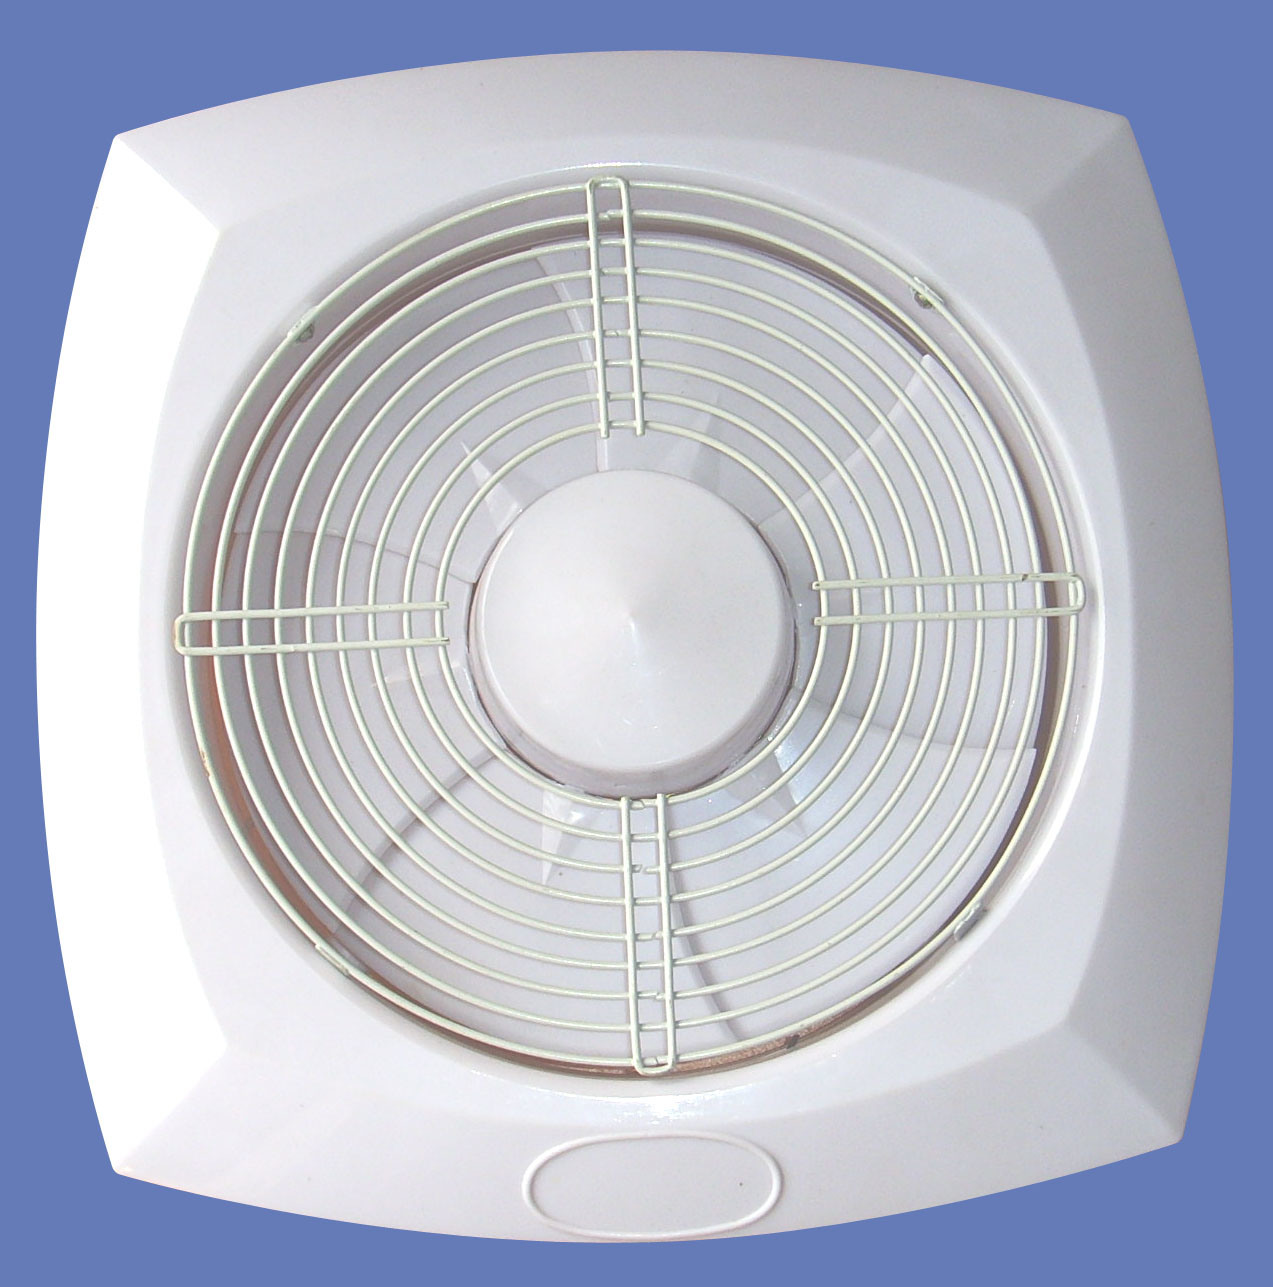 Full Plastic Shutter Exhaust/Ventilation Fan (APH25 20A) #435588